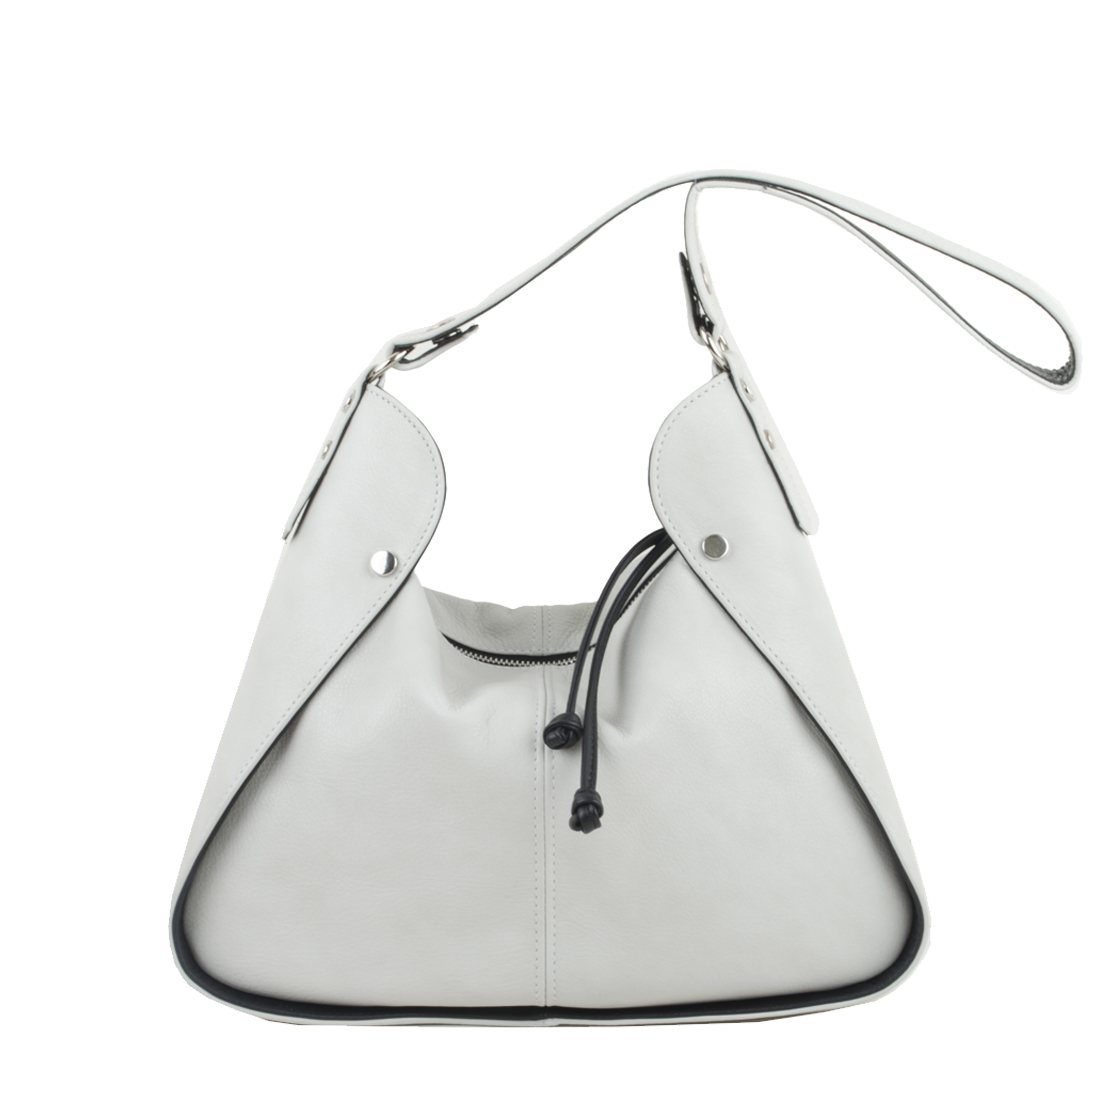 Meredith Polvere Leather Shoulder Bag.